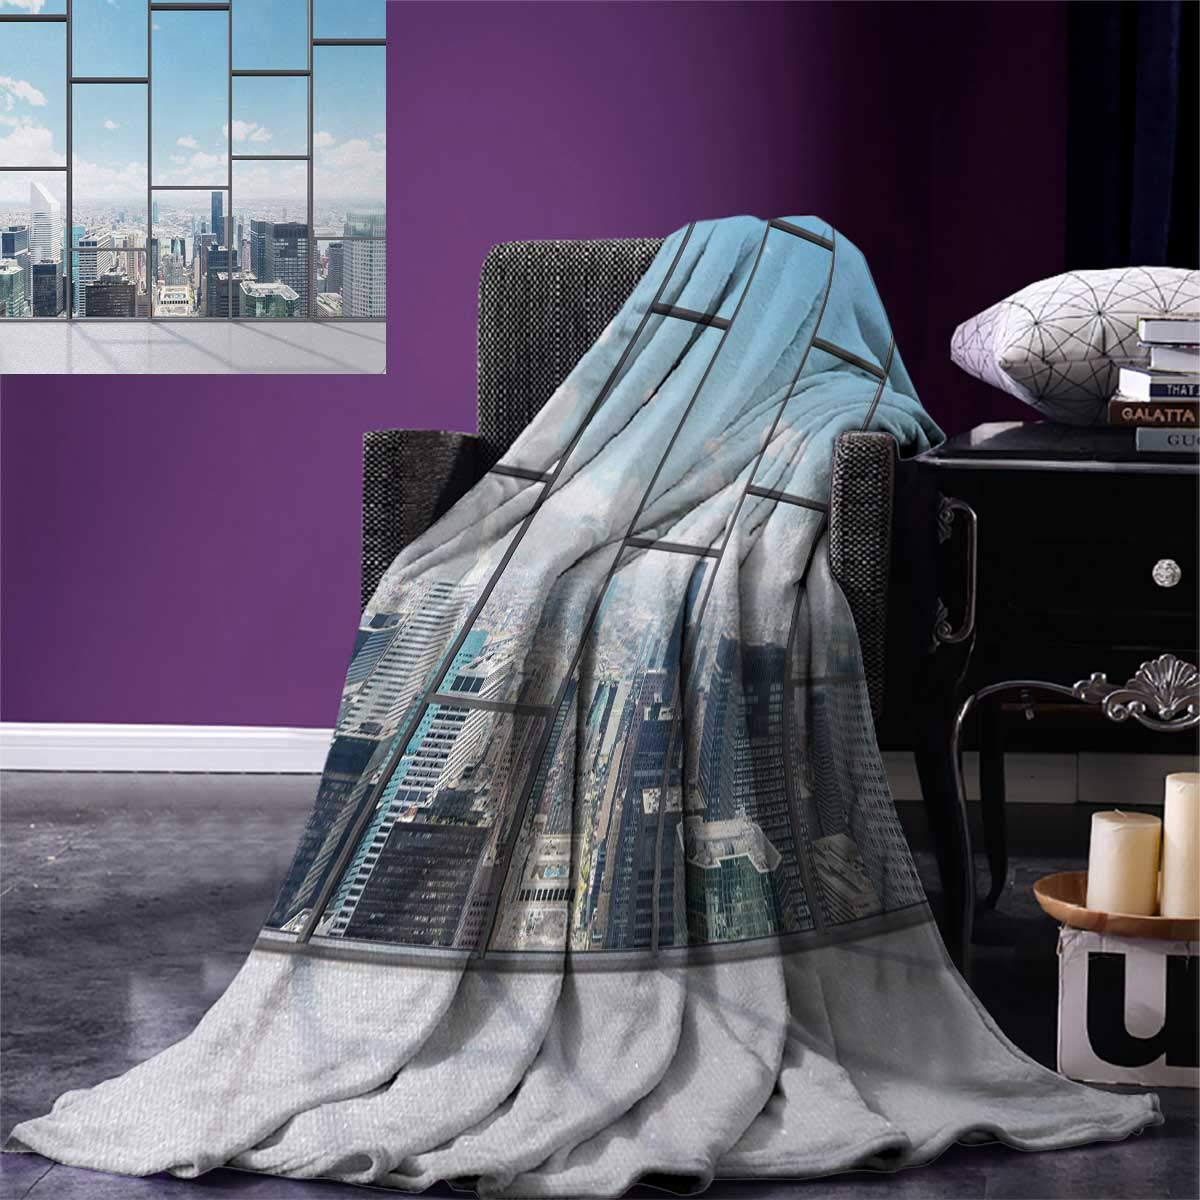 Anniutwo Modern Digital Printing Blanket Office Big Wide Windows City Building Skyscrapers View Art Photograph Custom Design Cozy Flannel Blanket 80''x60'' Sky Blue Grey